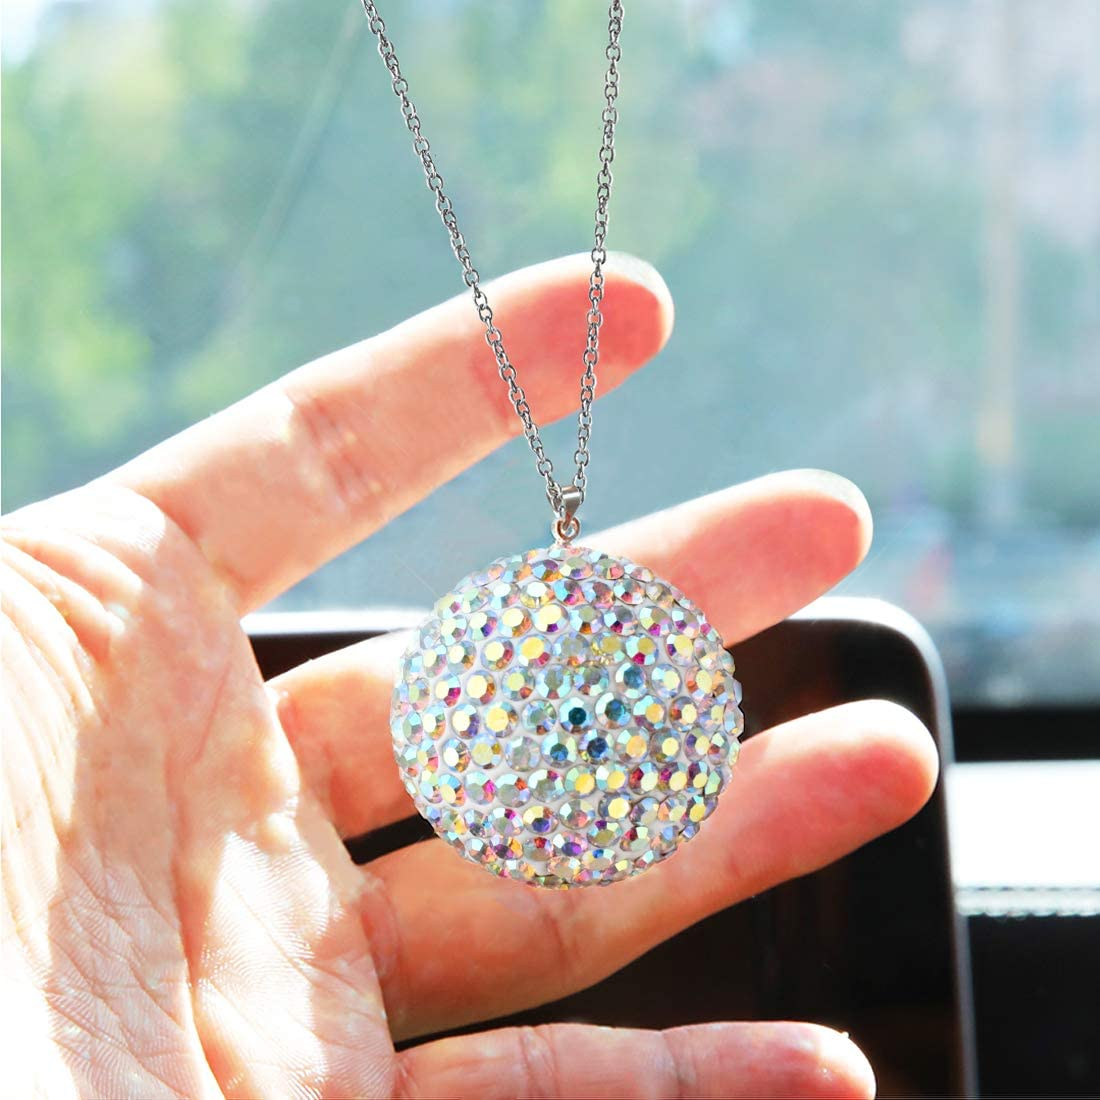 Bling Interior Accessories Bling Ball for Car Rear View Mirror Accessories Bling Decor Car Mirror Ornaments Crystal Rhinestone Bling Car Accessories